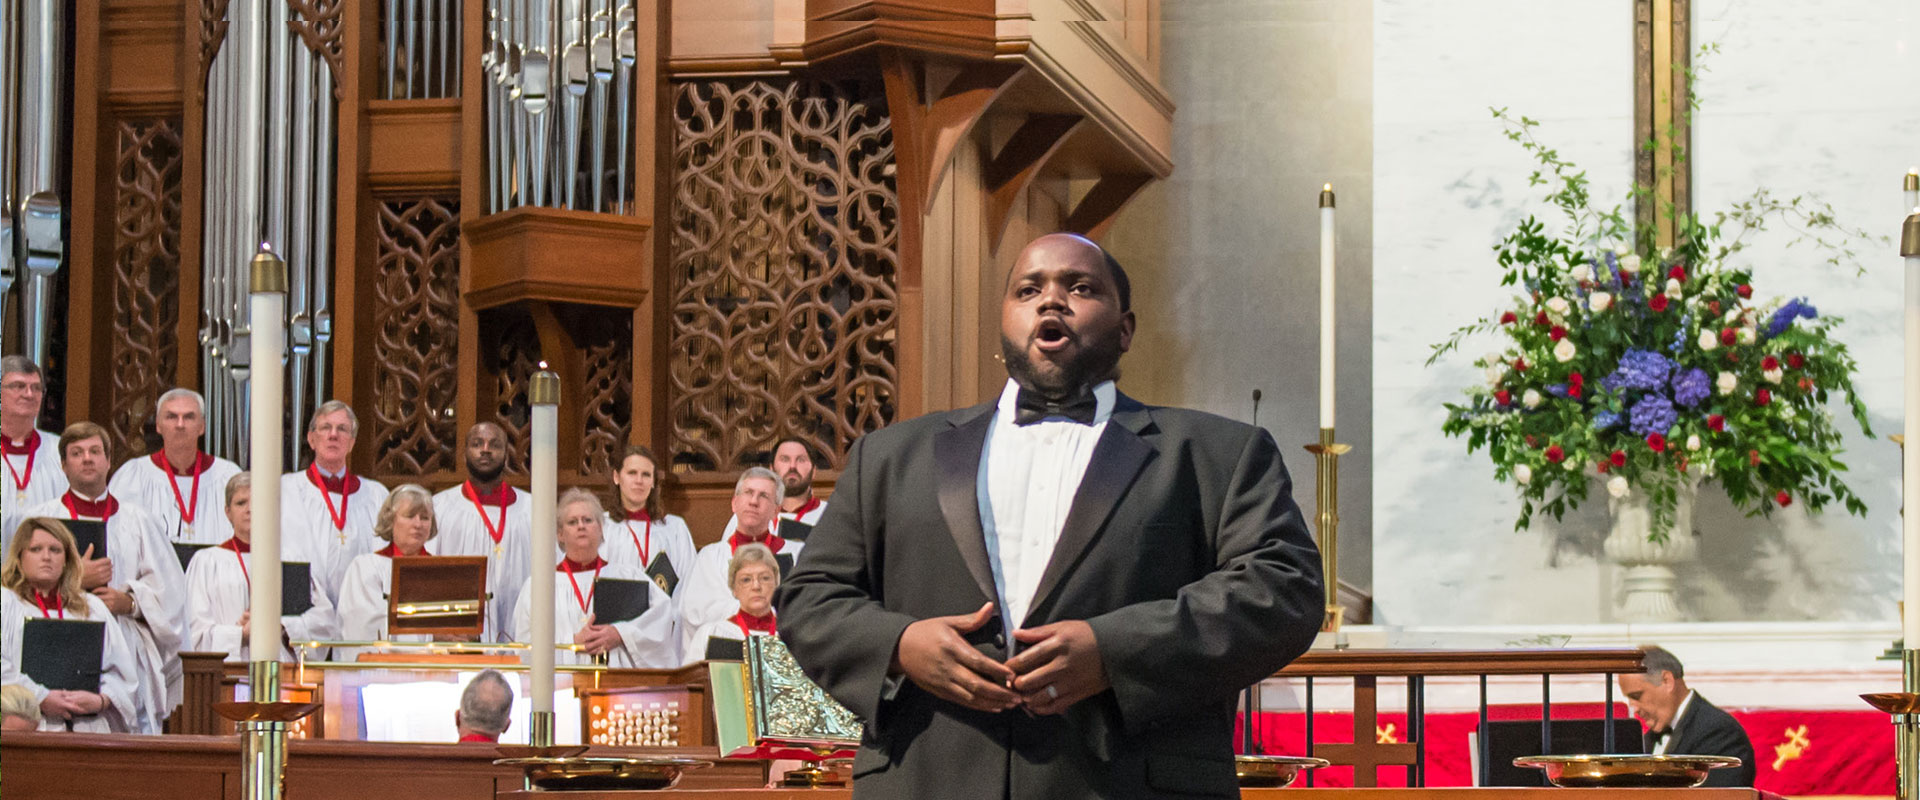 Celebration of Freedom Volunteer Chorus and Timothy Miller